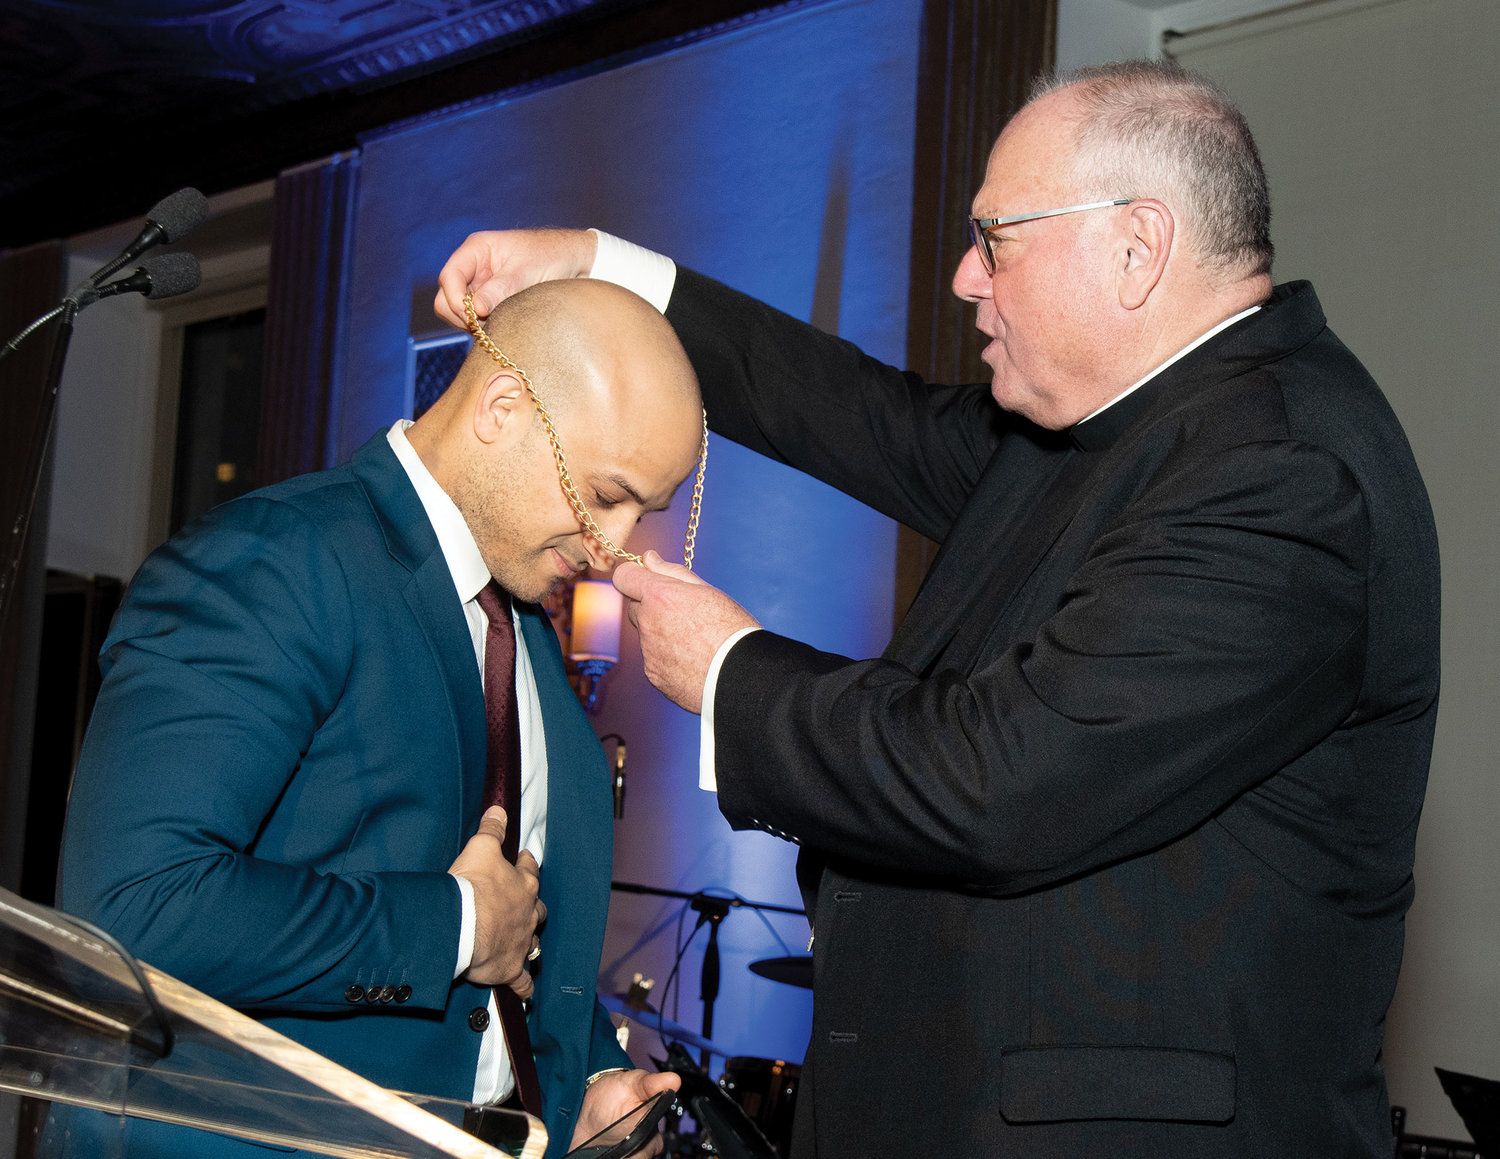 Cardinal Dolan bestows the Pierre Toussaint Award medallion on Dr. Paul Tallaj, the son of honoree Dr. Ramón Tallaj, who was unable to attend. Dr. Ramón is chairman of the board, SOMOS Community Care, Manhattan.